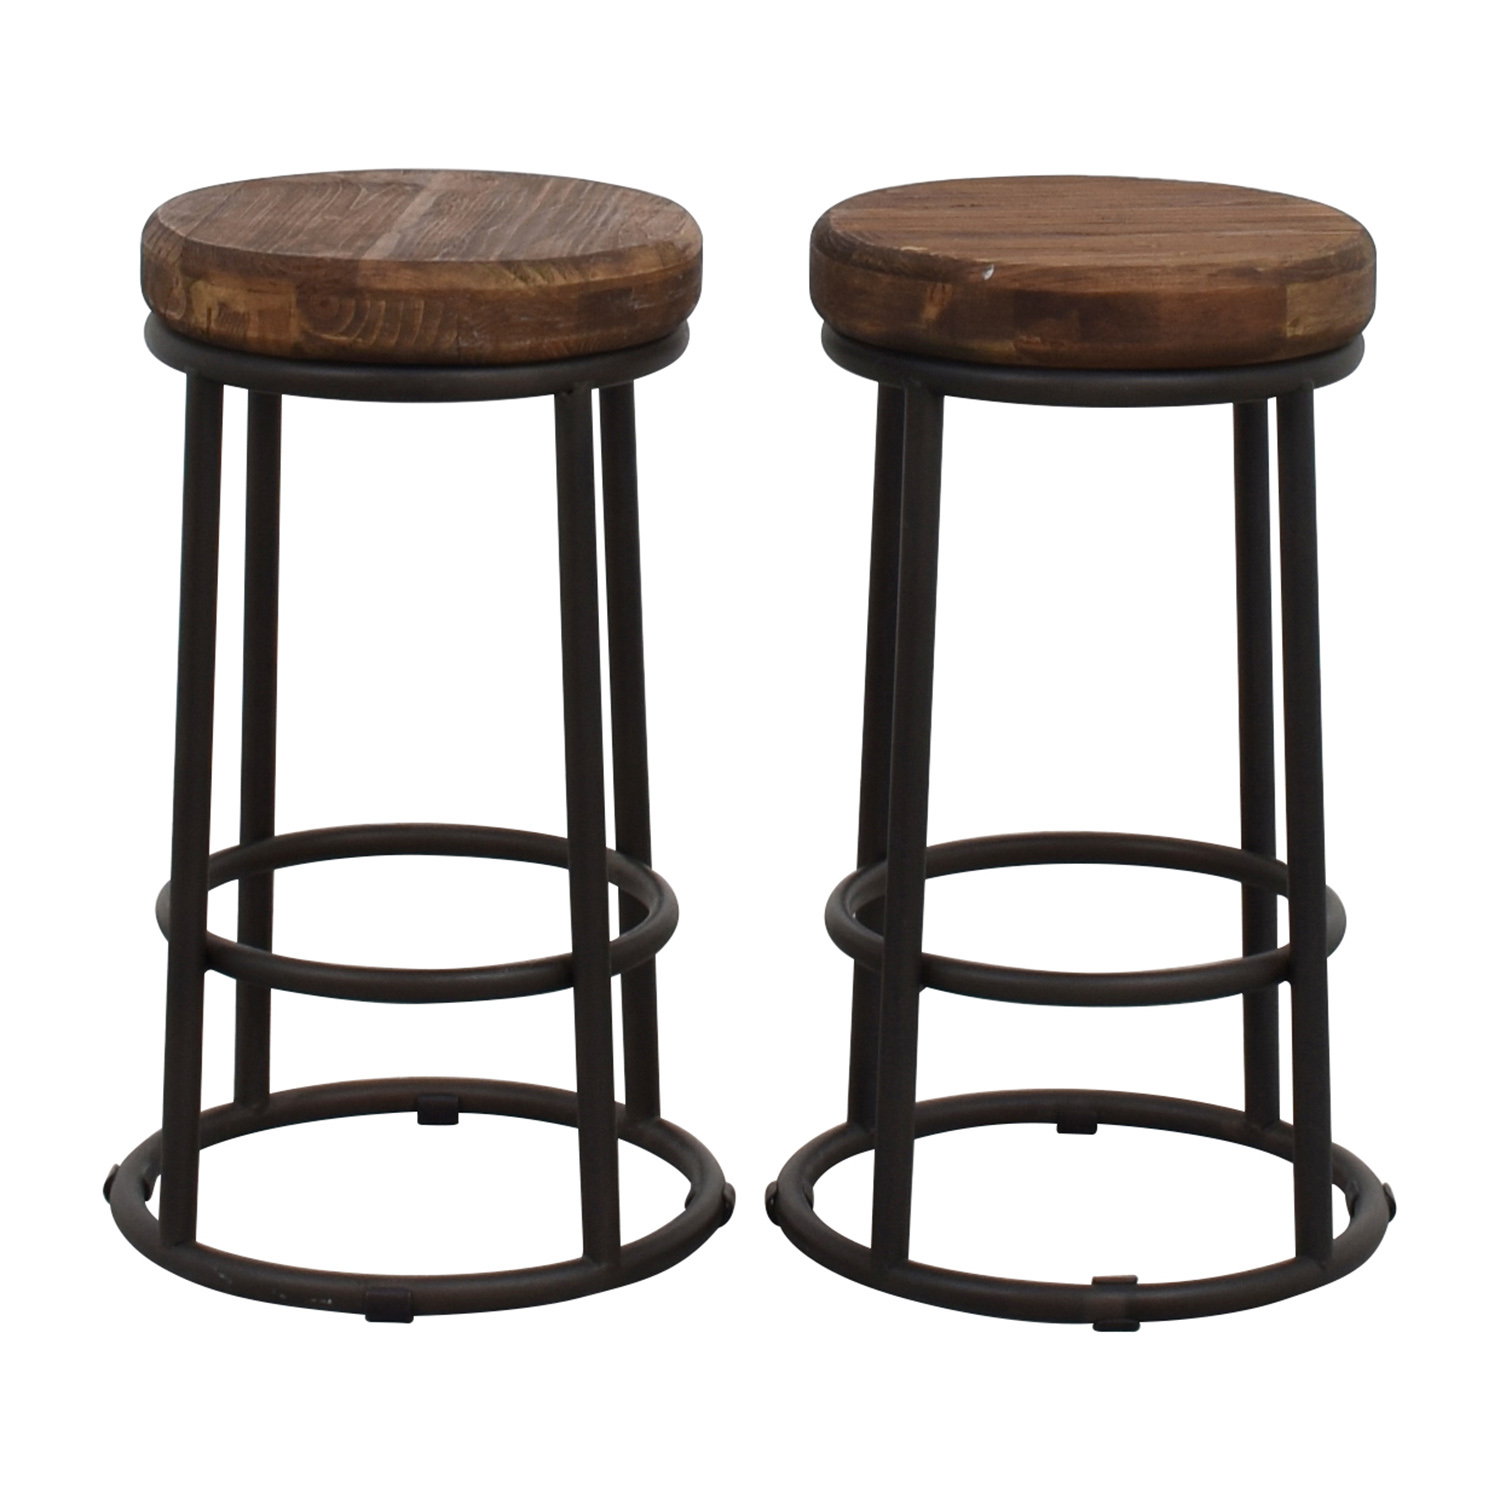 1 Kings Lane 1 Kings Lane Joy Bar Stools used